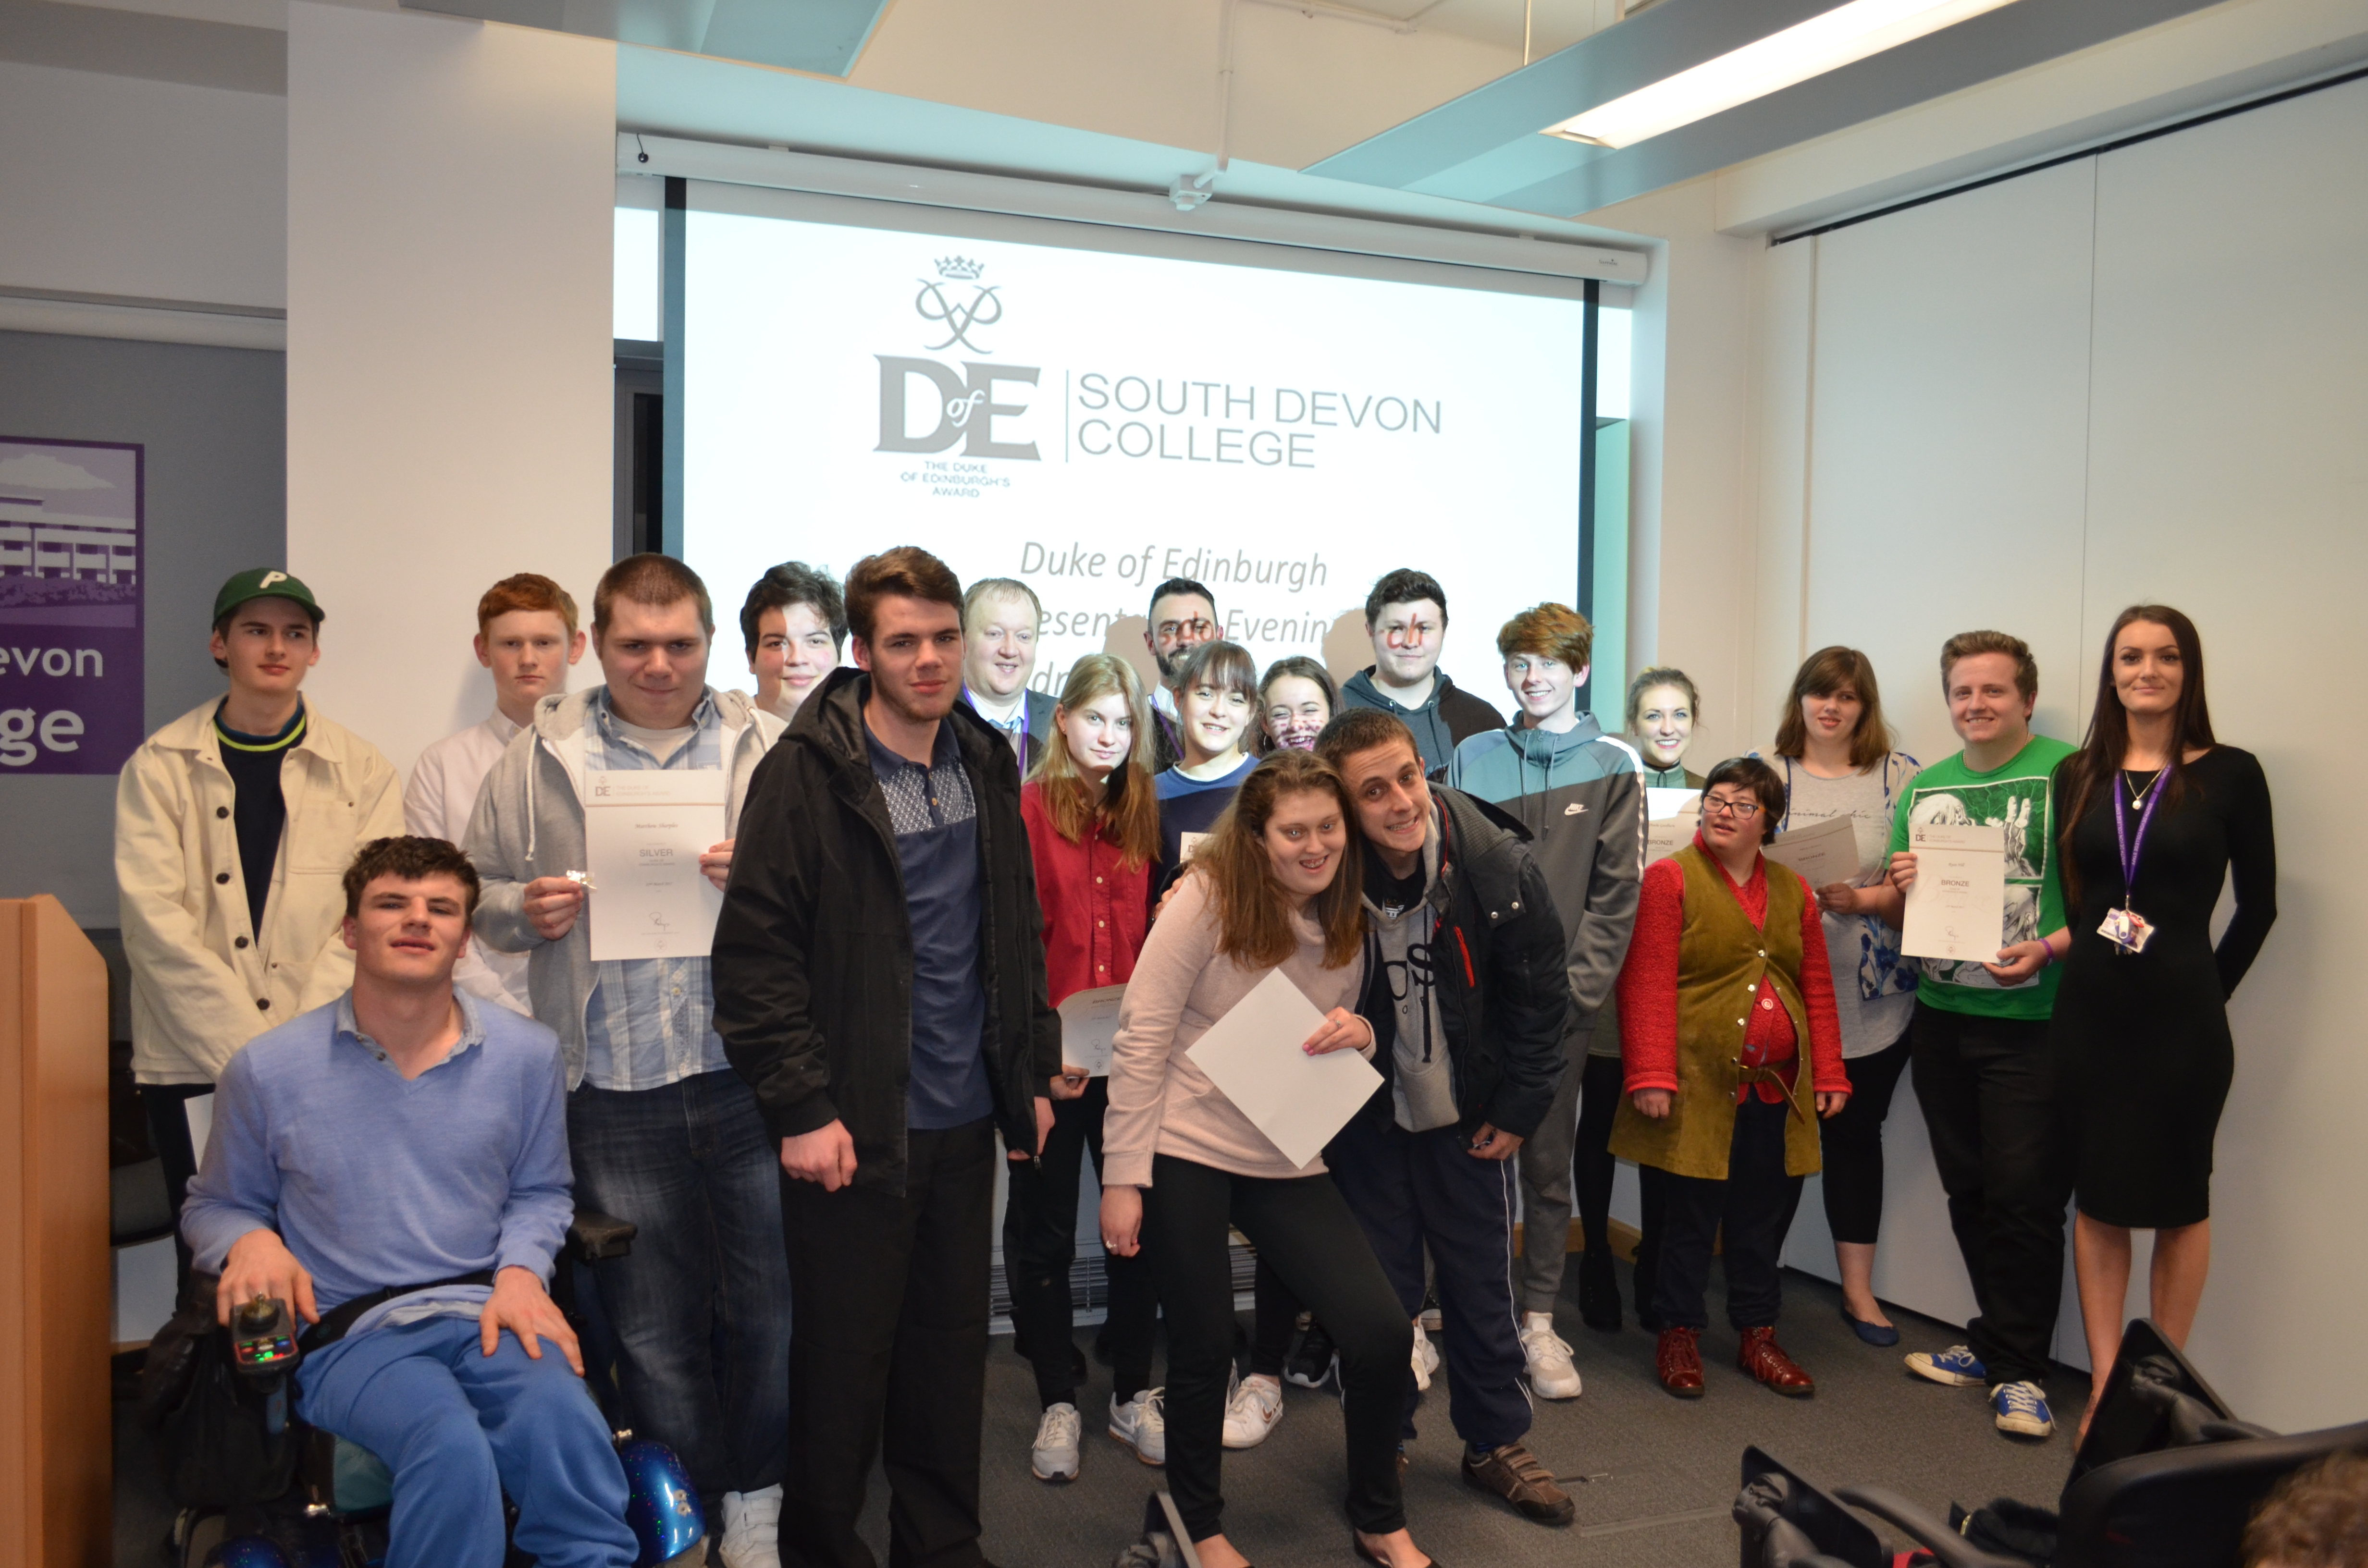 Duke of Edinburgh award ceremony